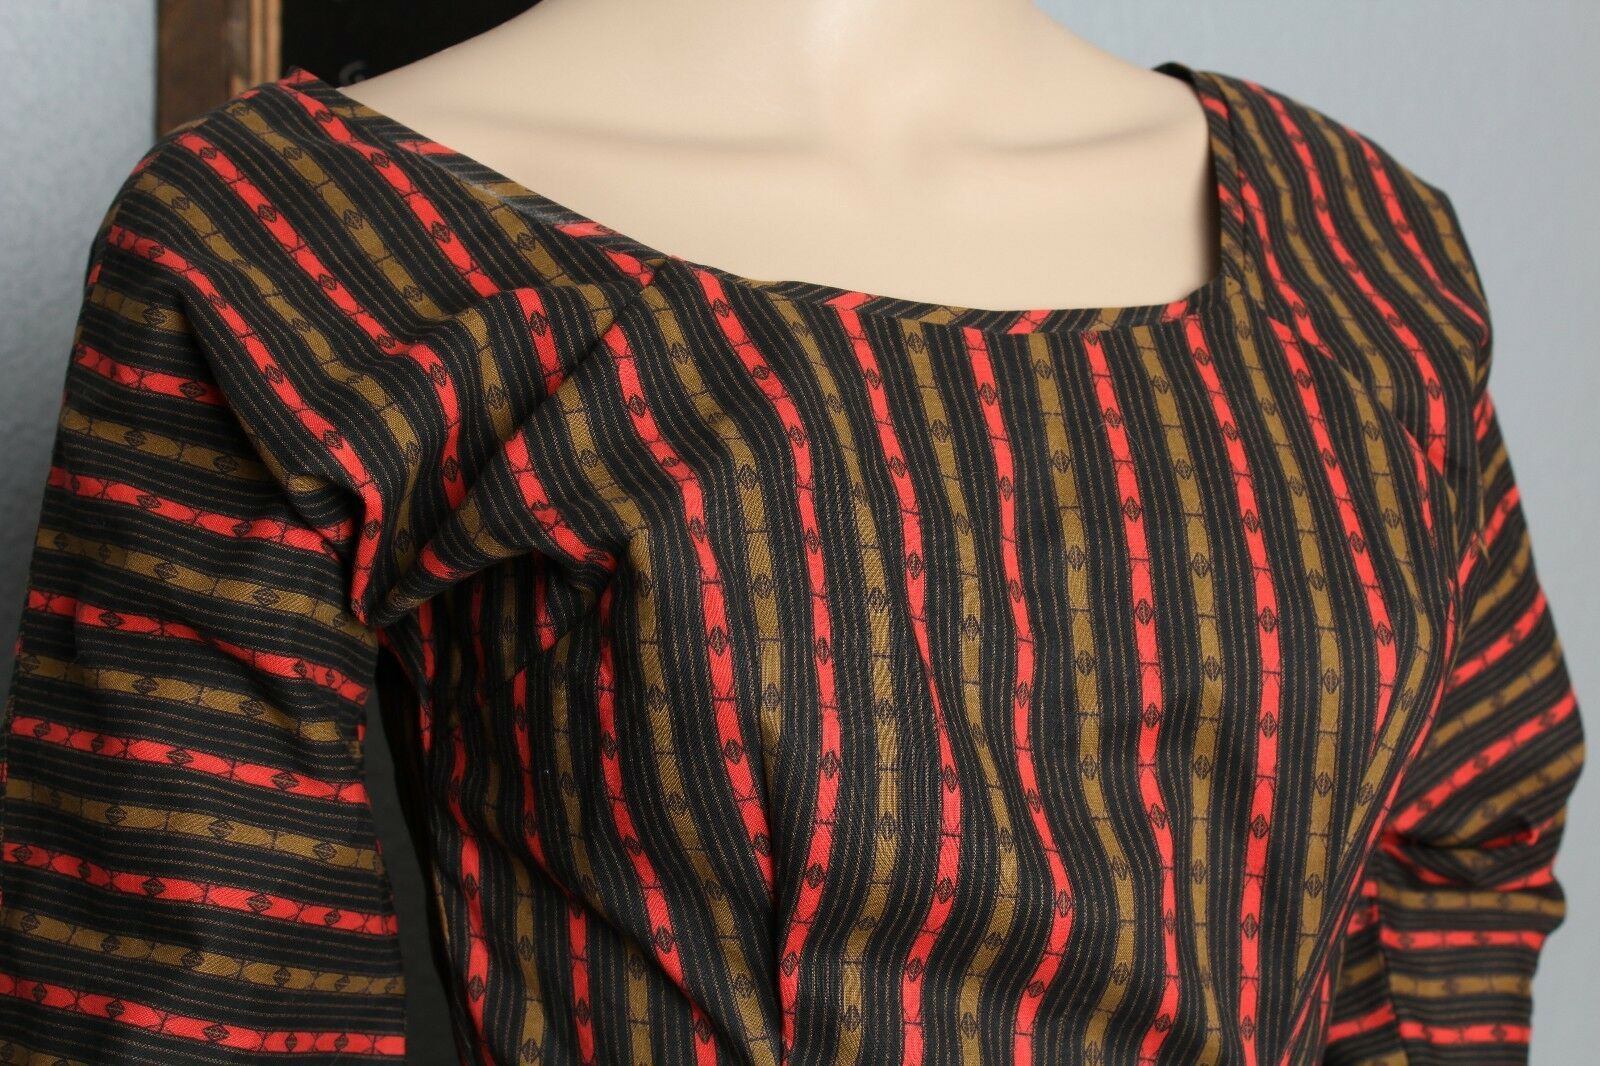 Vintage 15.2ms Sud-Ouest Ethnique Azteque Atomique Chimayo Look Rayure Ourlet